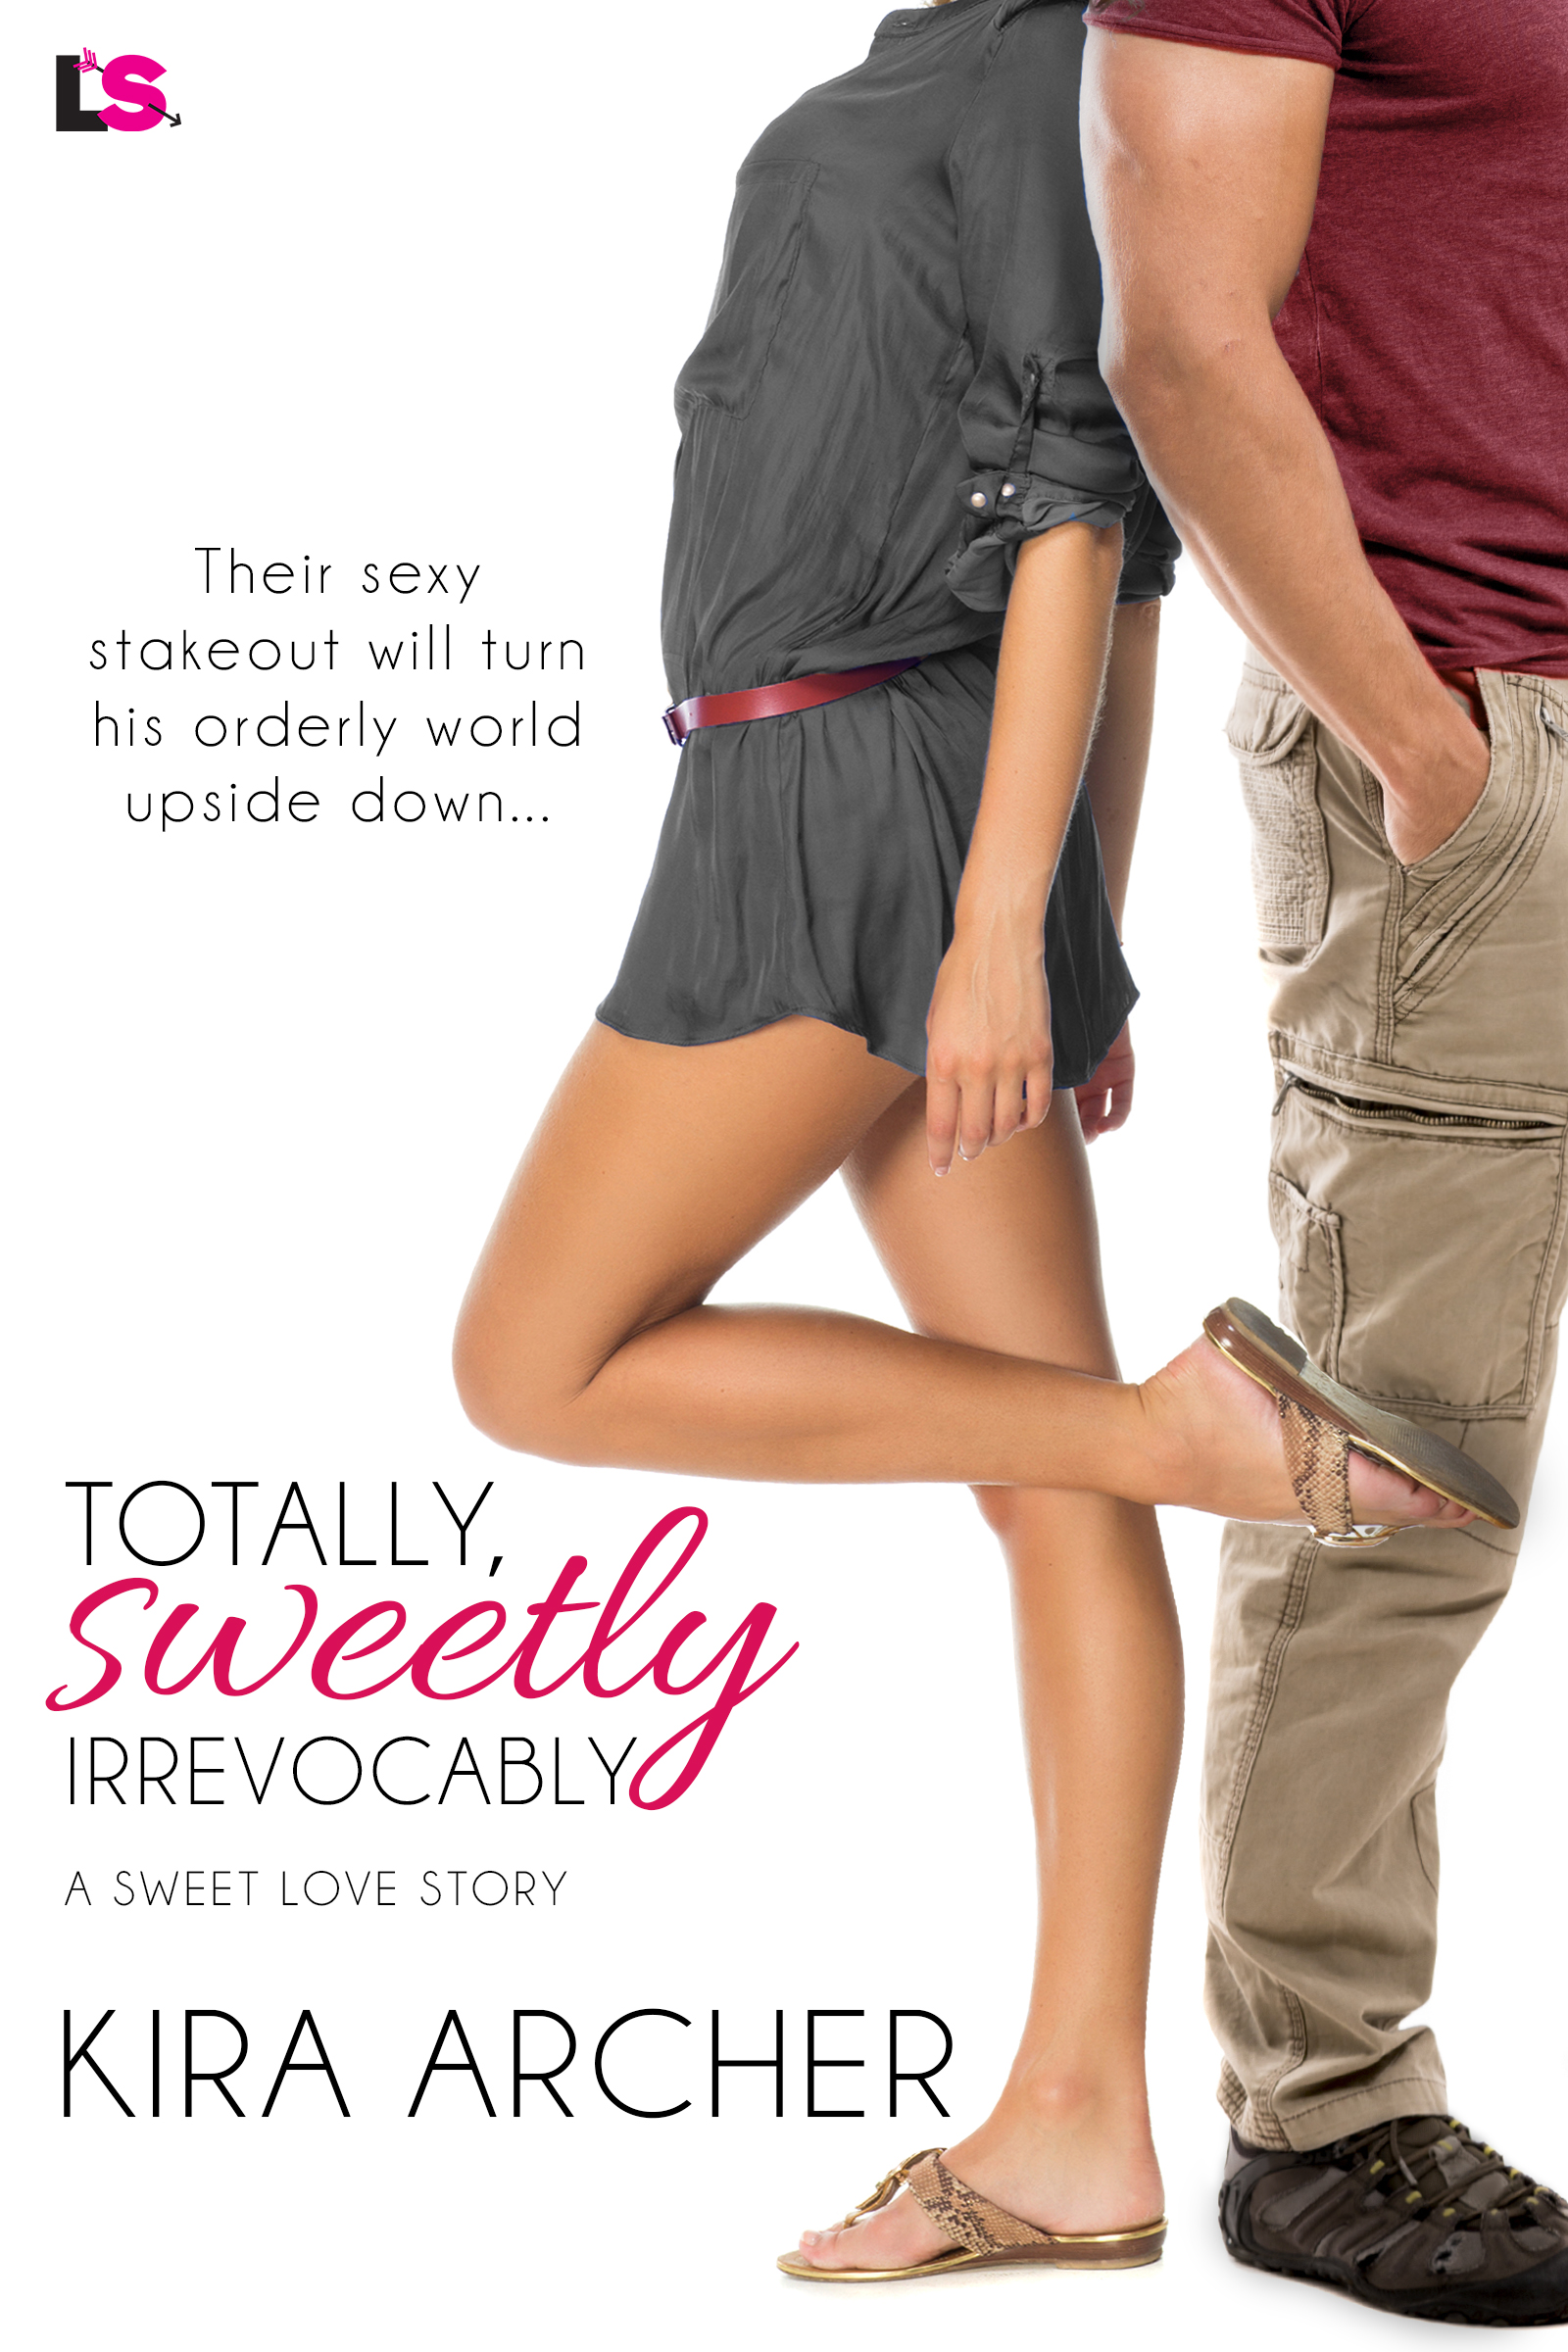 Totally, Sweetly Irrevocably